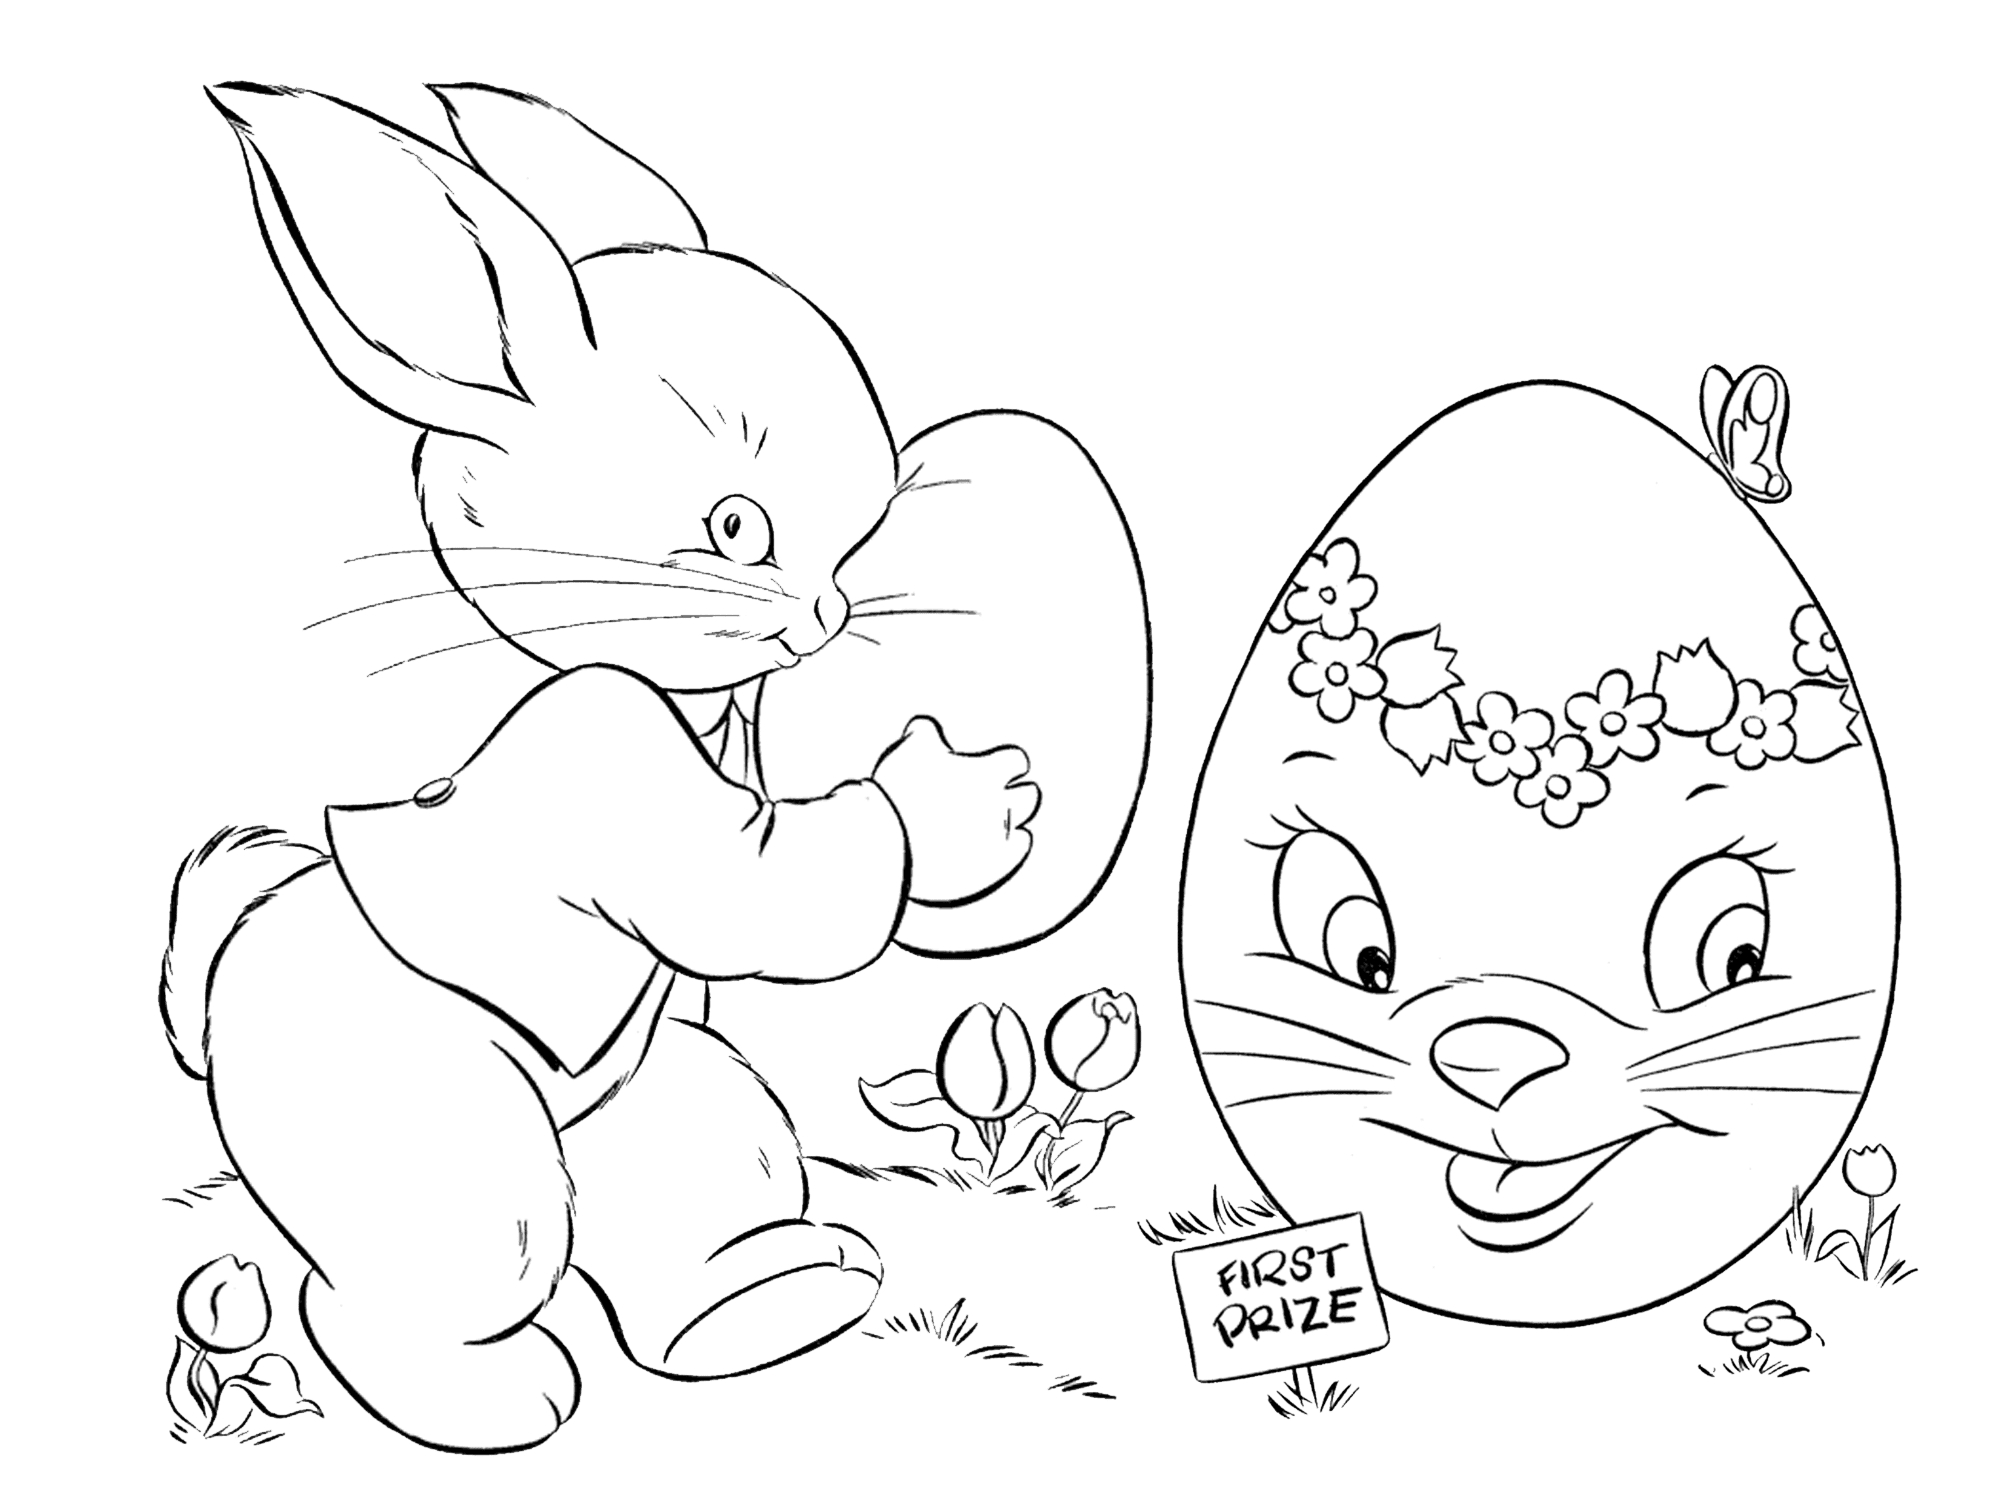 free printable easter coloring pages free printable easter egg coloring pages only coloring pagesonly coloring pages printable free coloring pages easter